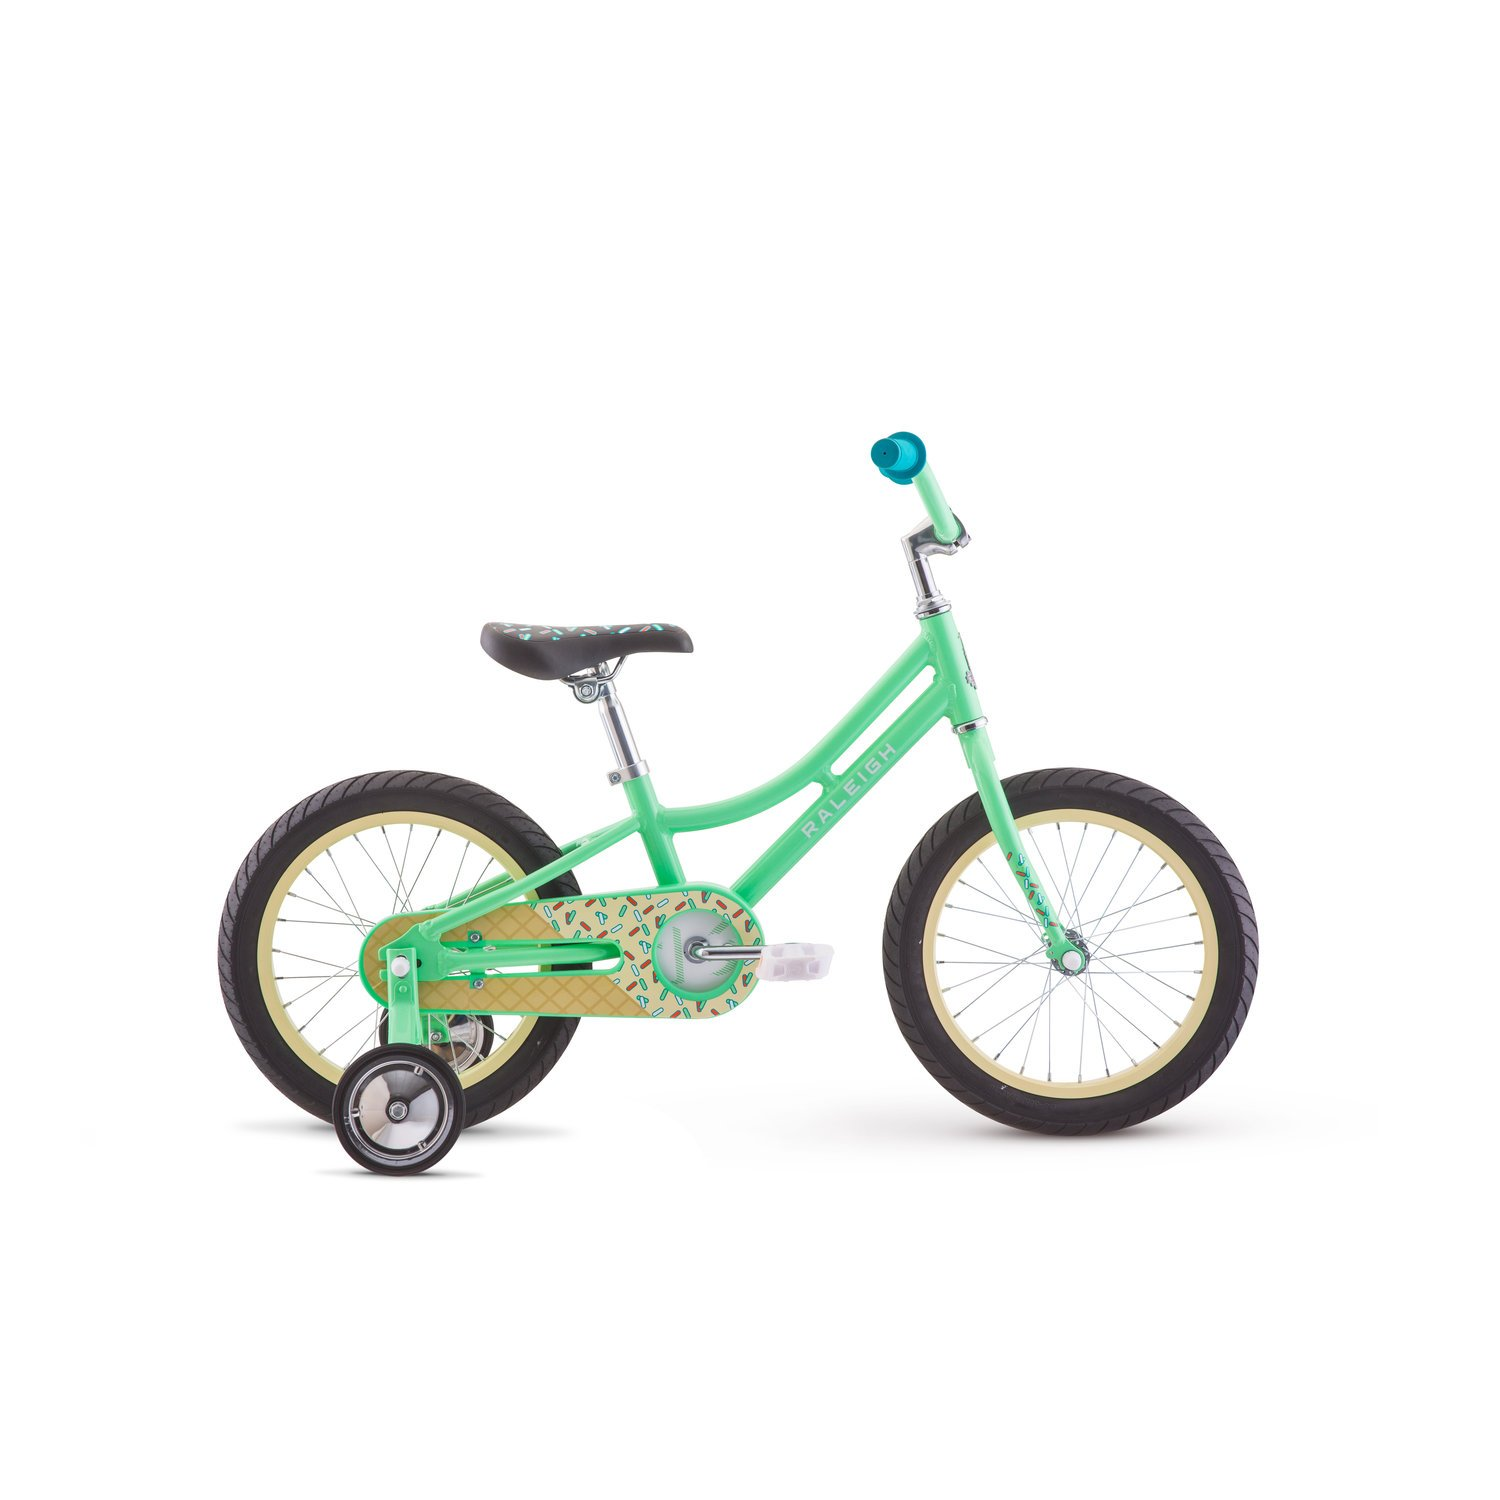 Raleigh Bikes Jazzi 16 Kids Bike with Training Wheels for Girls Youth 3-5 Years Old